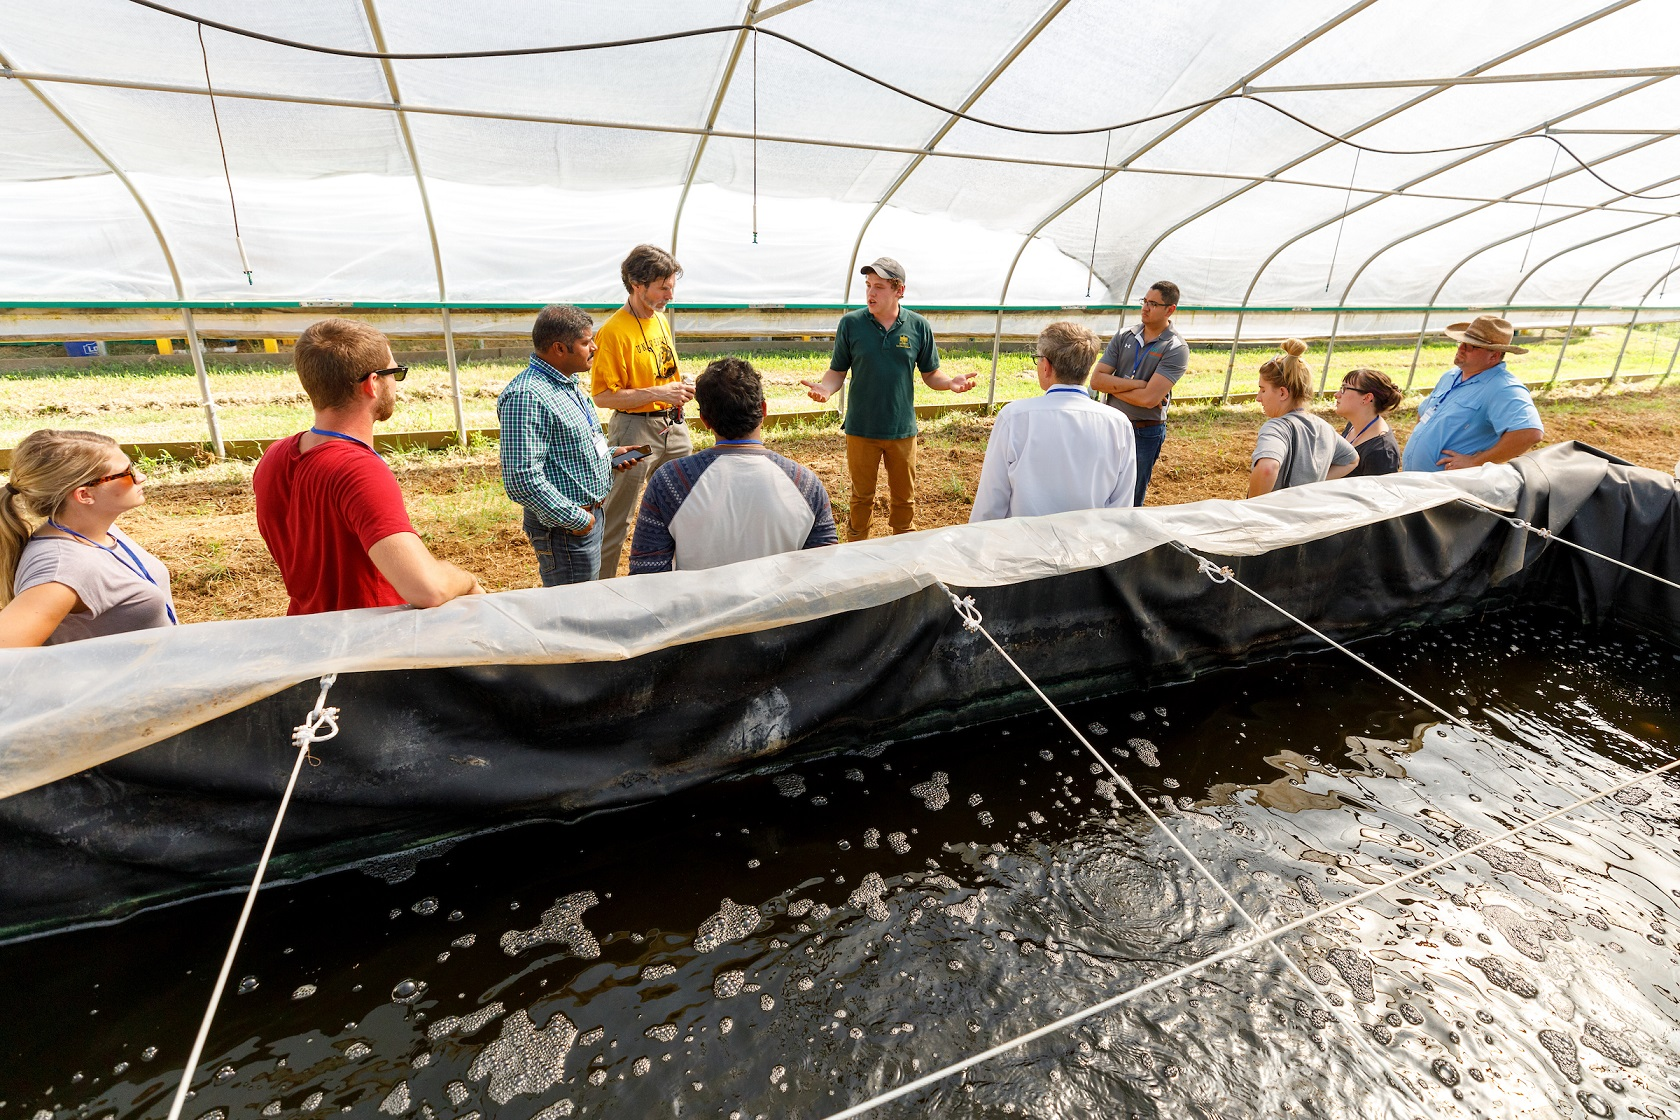 FRANKFORT, Ky., -- Nathan Kring Kentucky State University aquaculture students give tours of the High Tunnels on campus that house hemp, and marine shrimp as part of a shrimp farming workshop, Friday, Sept. 14, 2018 at the Harold R. Benson Research and Demonstration Farm in FRANKFORT.